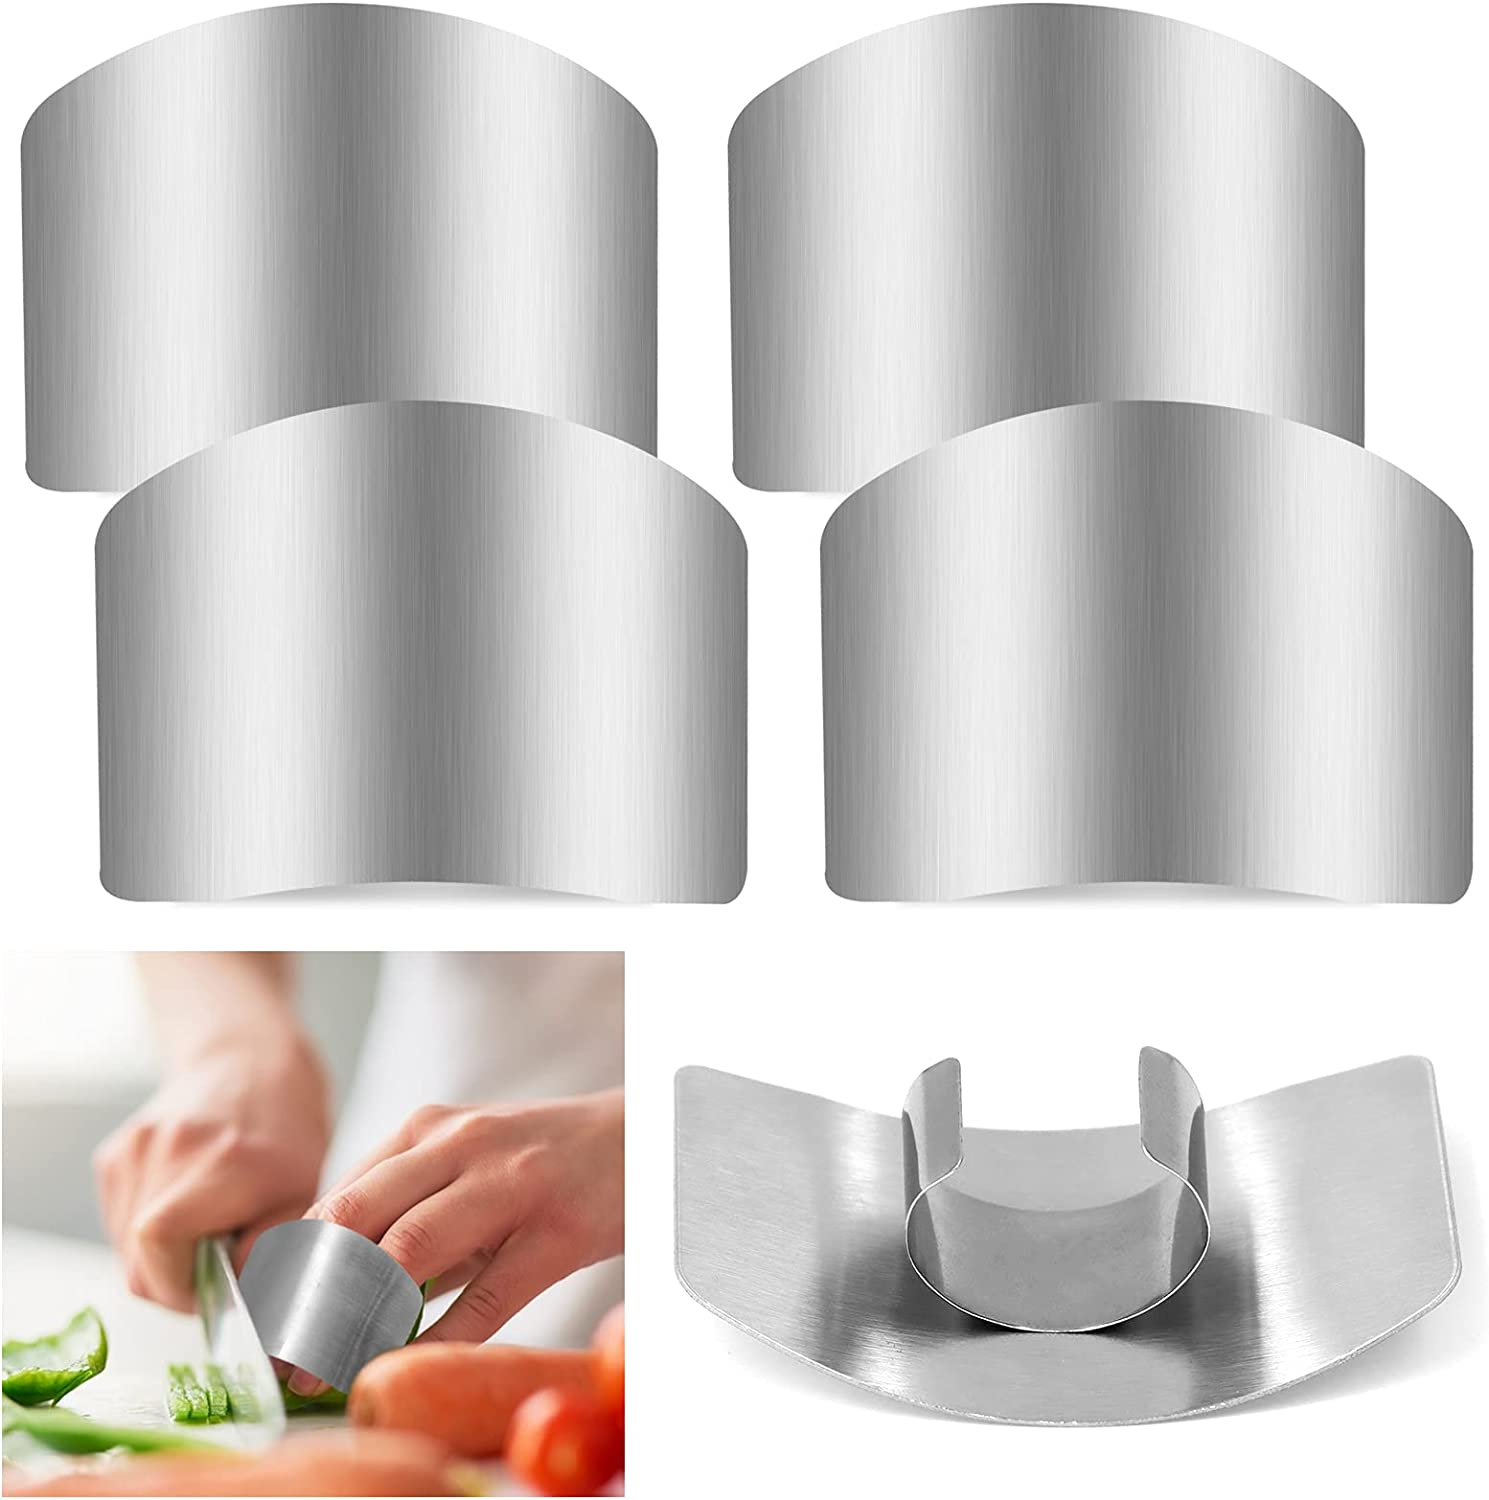 ZOCONE 4 PCs Finger Guard For Cutting Kitchen Tool Finger Guard Stainless Steel Finger Protector Avoid Hurting When Slicing and Dicing Kitchen Safe Chop Cut Tool (PH0088-4)